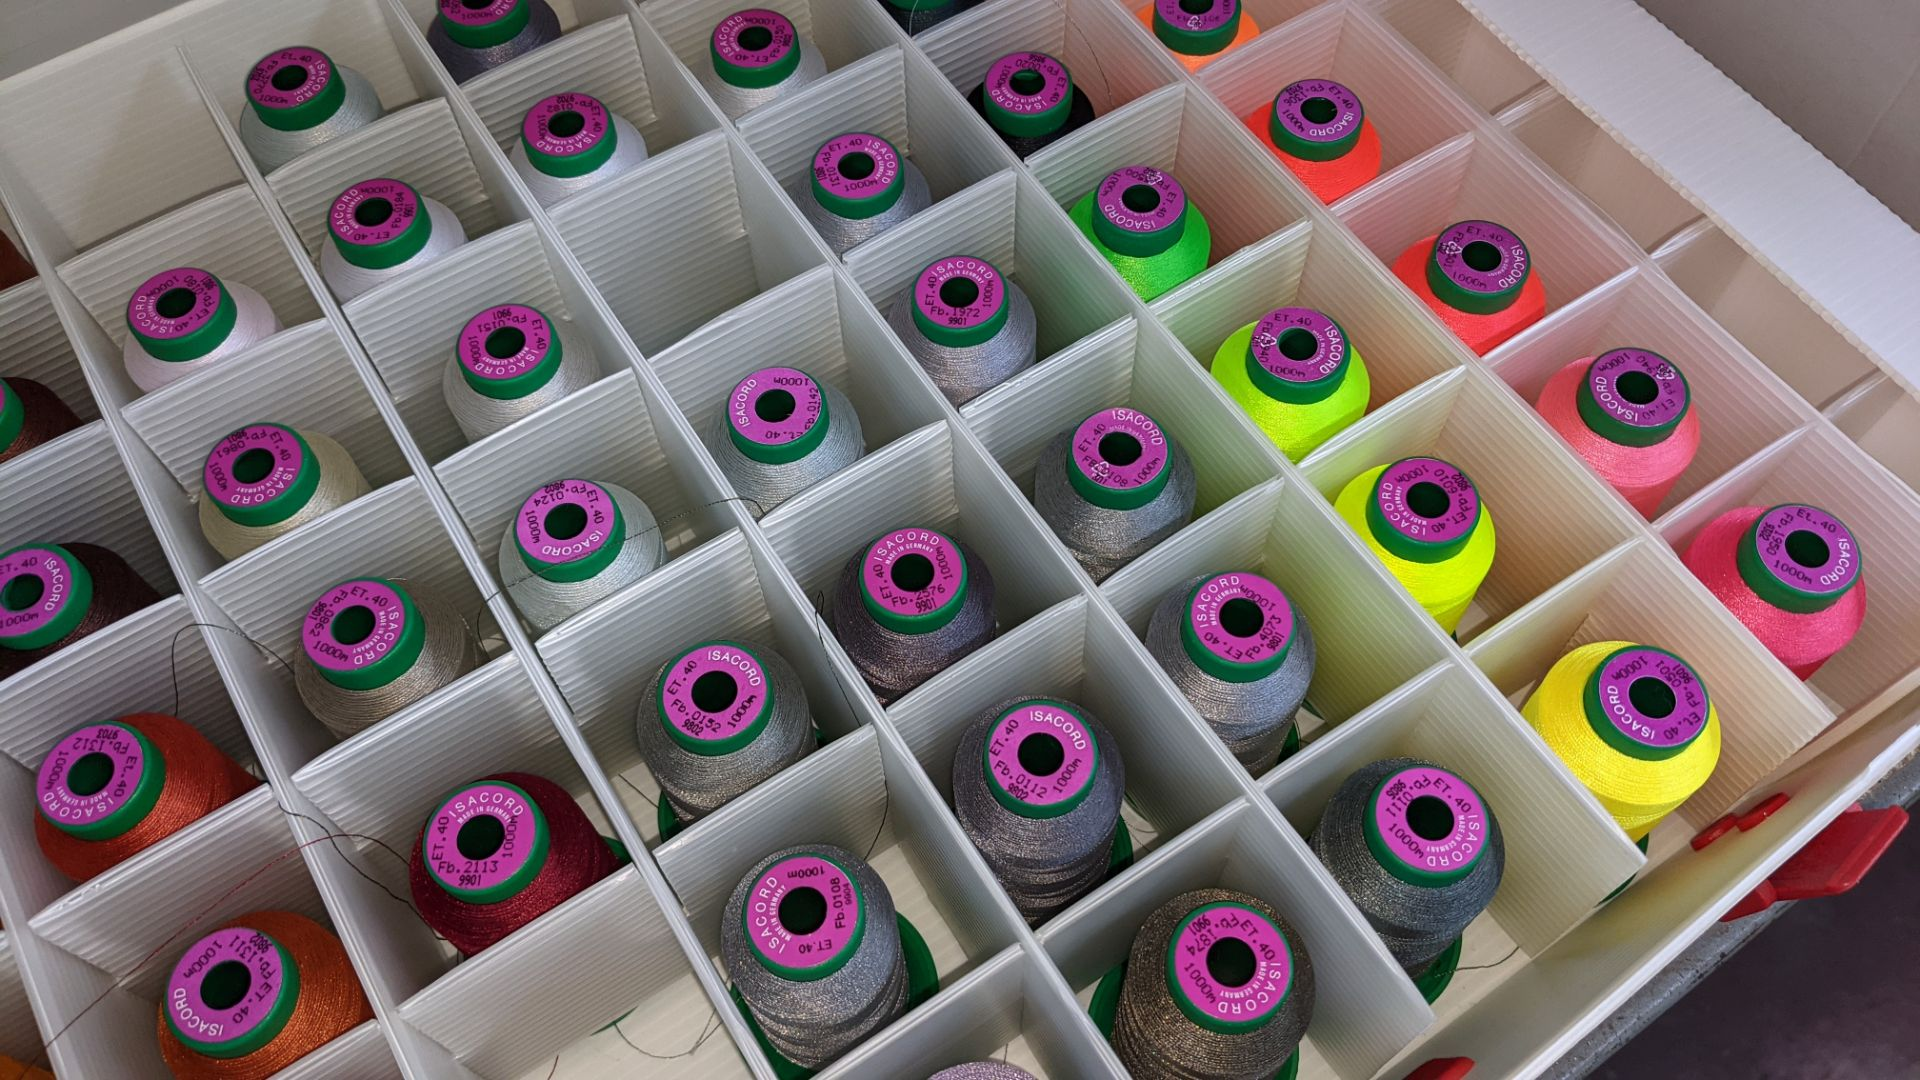 5 large cases of Ackermann Isacord thread - Image 4 of 13